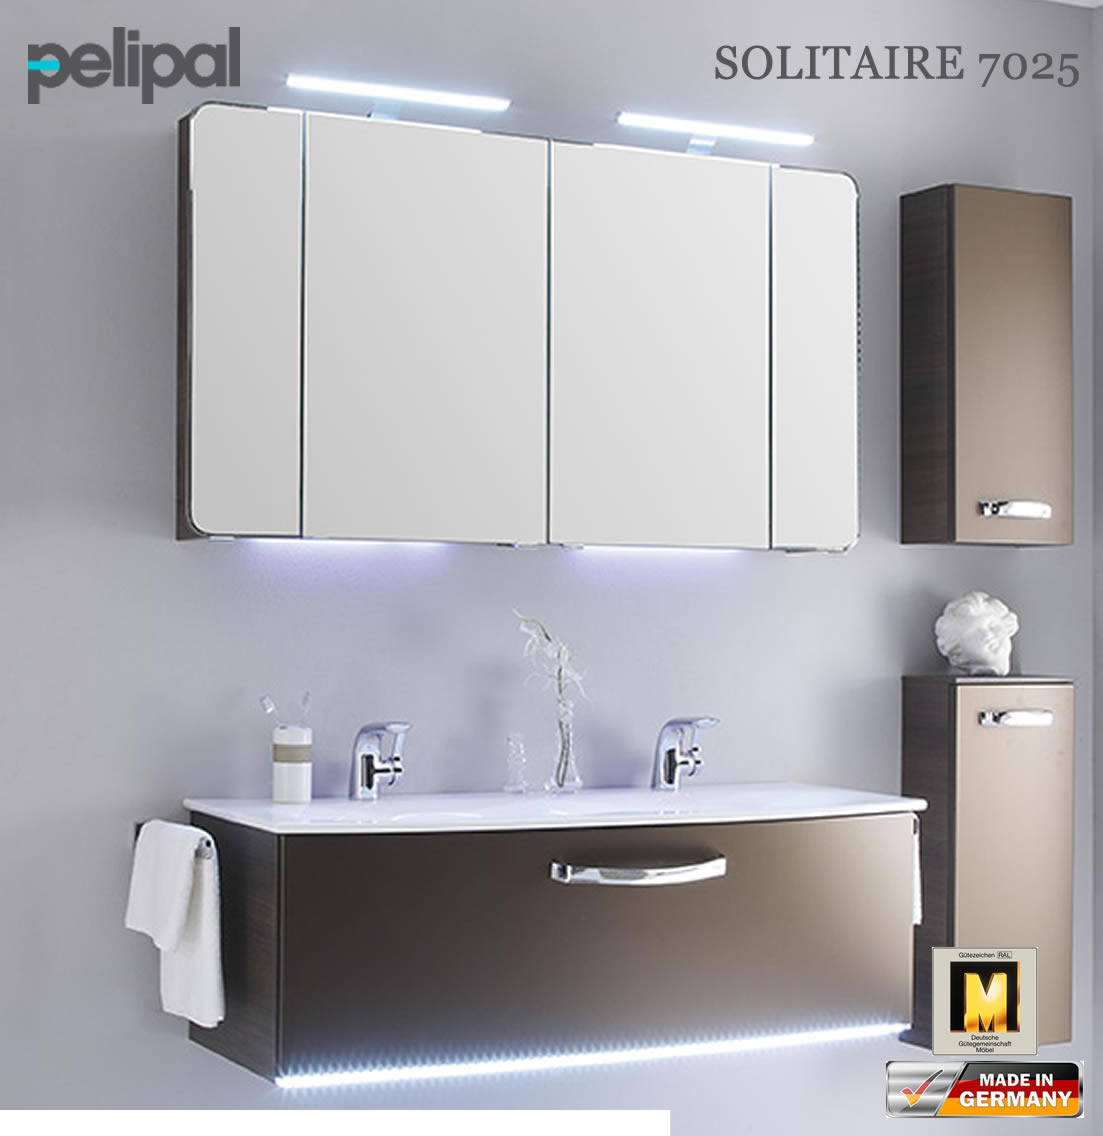 pelipal solitaire 7025 badm bel set mit 1220 mm doppelwaschtisch v3 6 impuls home. Black Bedroom Furniture Sets. Home Design Ideas